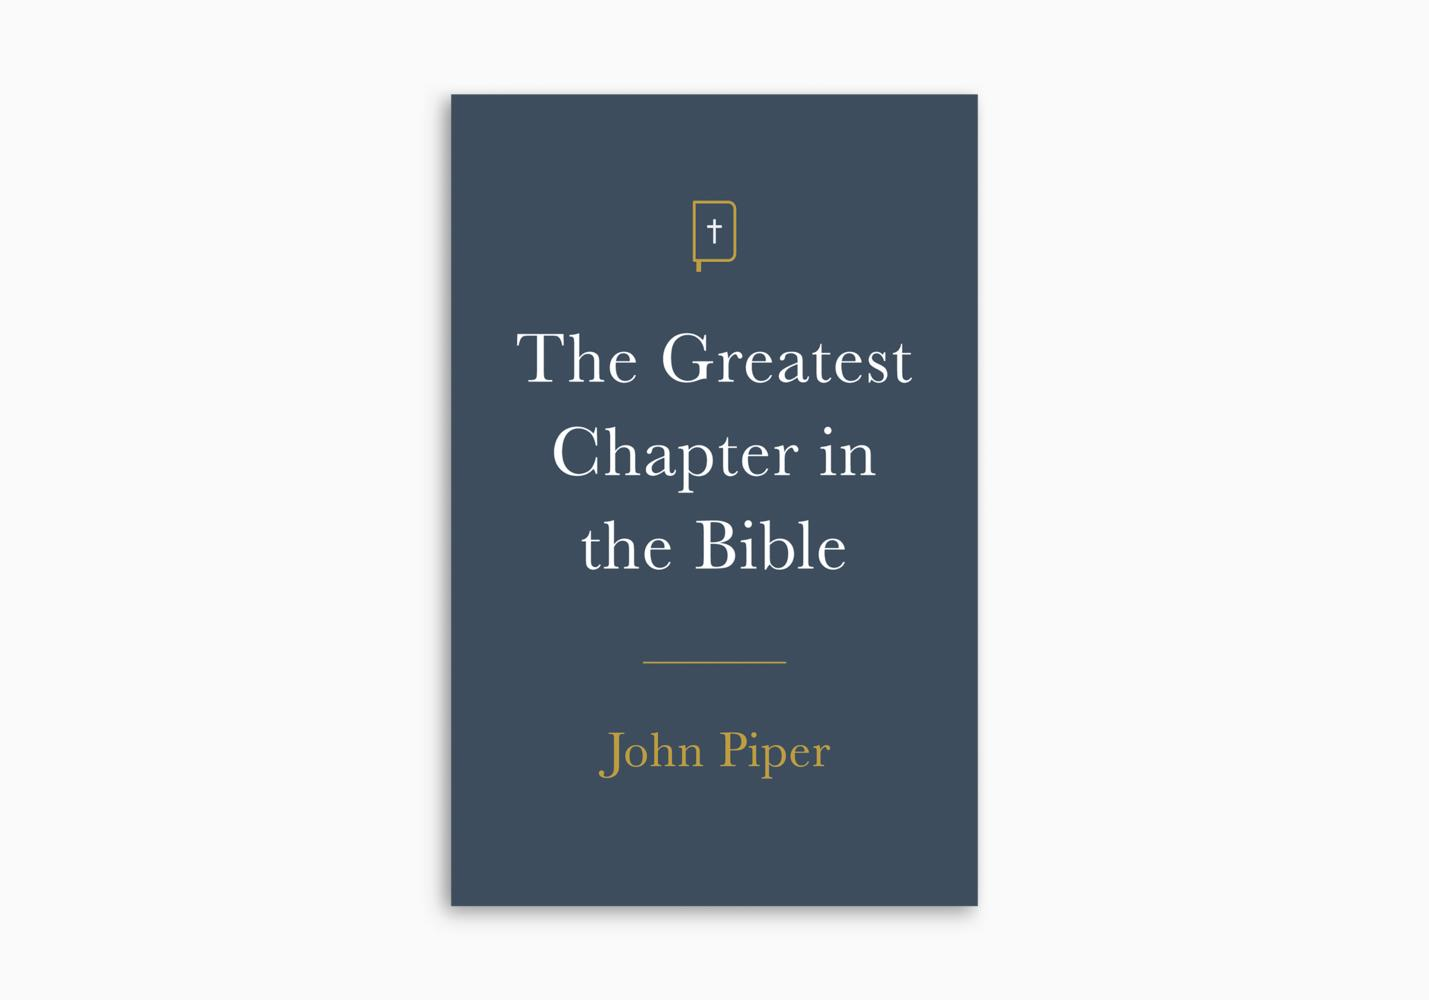 The Greatest Chapter in the Bible